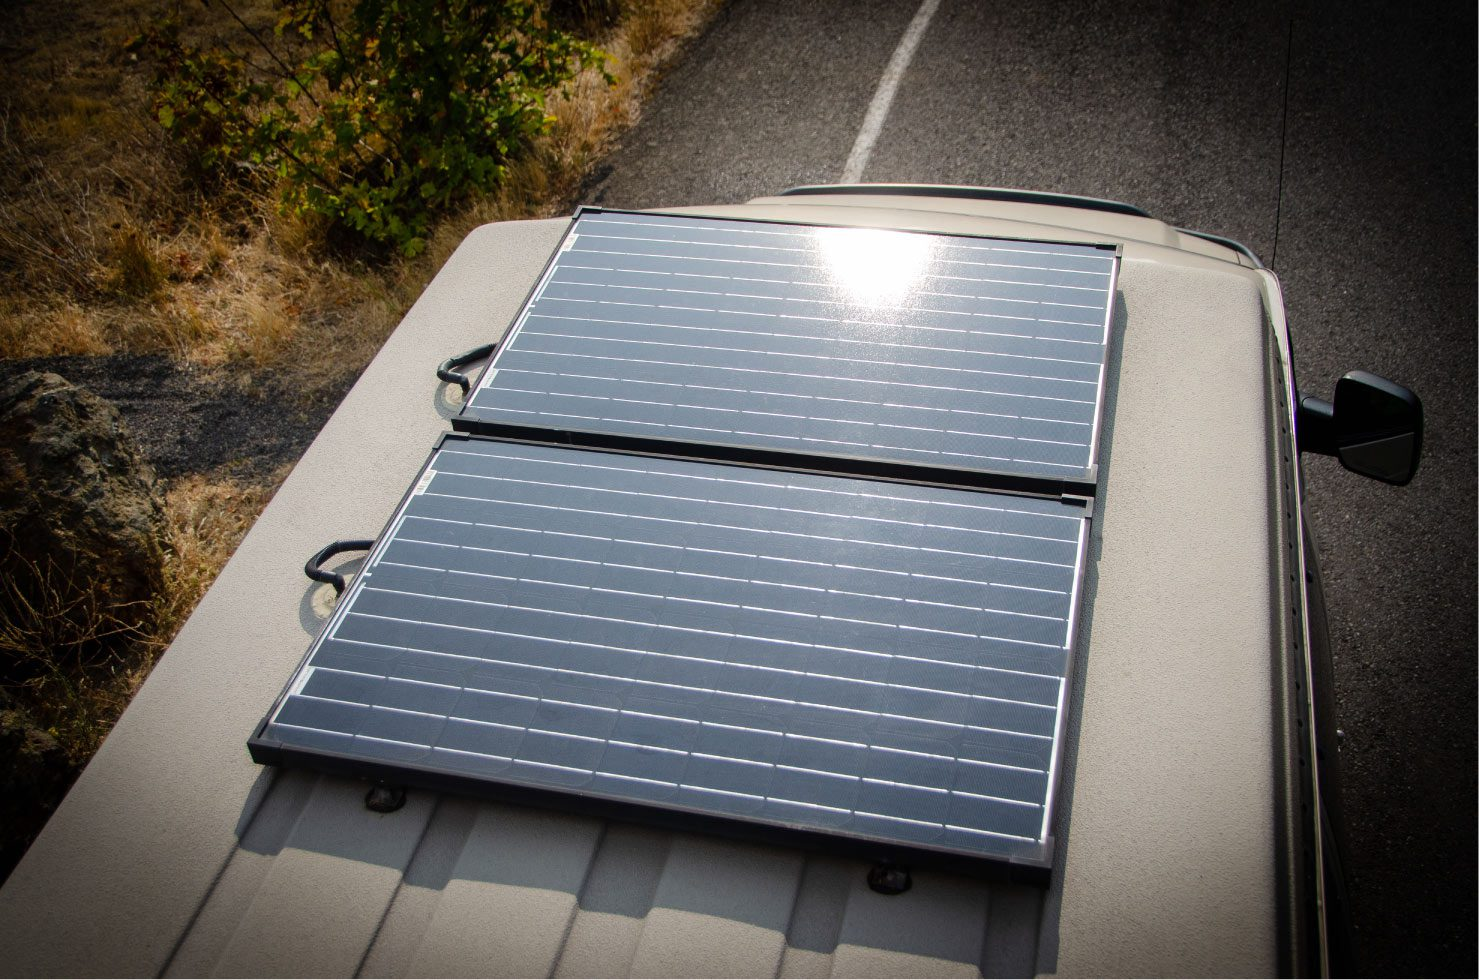 Zamp solar panels on top of a Inside view of a 4wd Sportsmobile penthouse with windows that open with screens Ford E-Series 4x4 Econoline Sportsmobile RB50 Layout Campervan conversion for sale built by Van Specialties